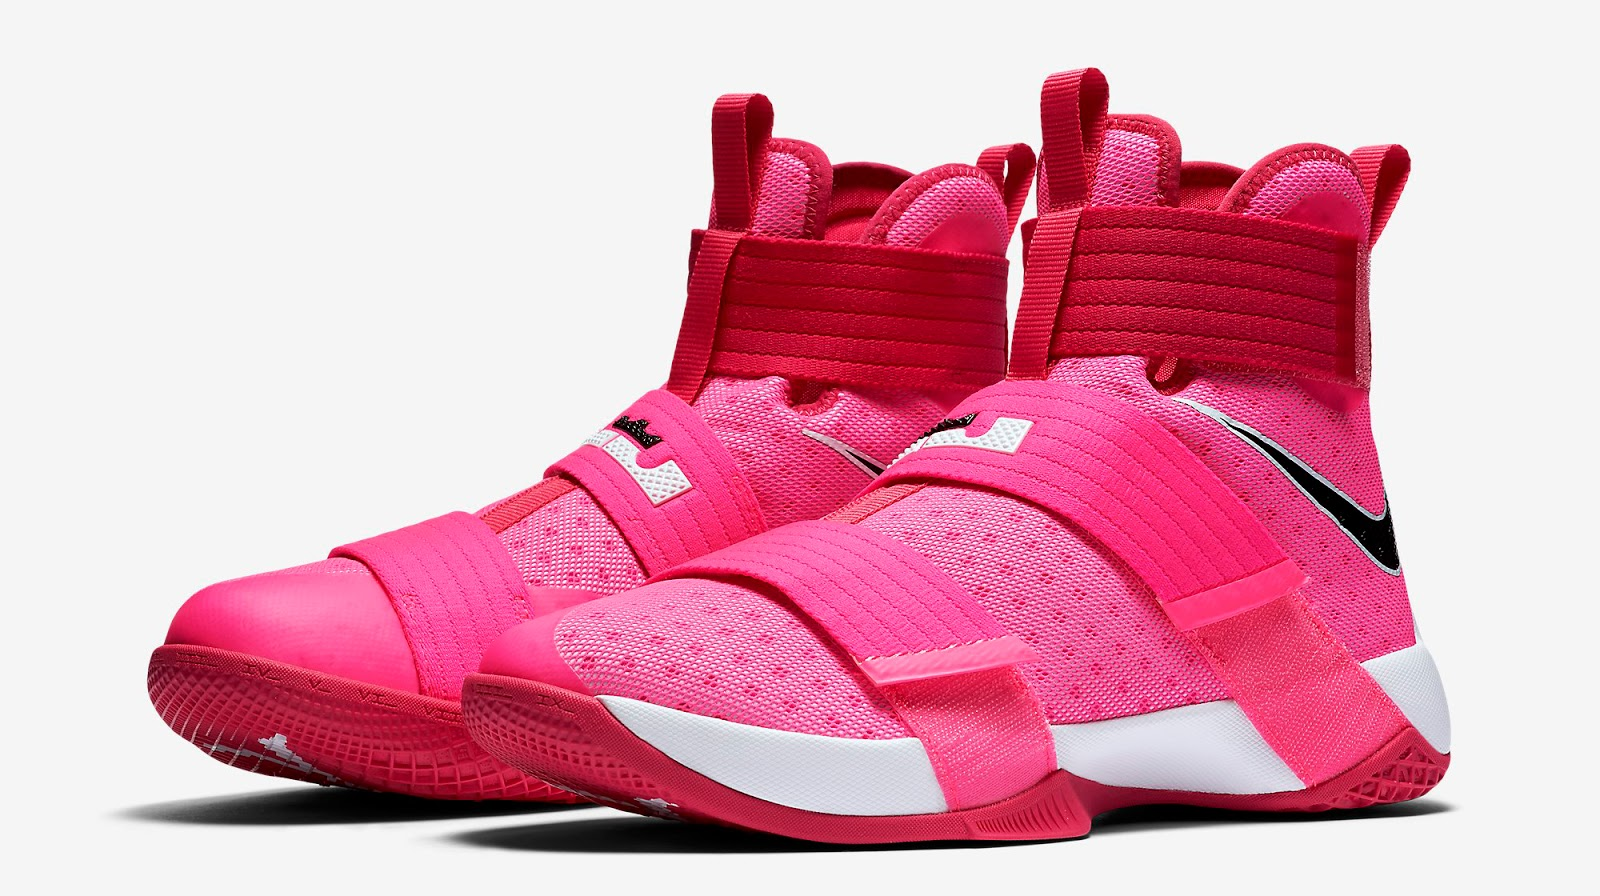 Nike Breast Cancer Shoes  Champs